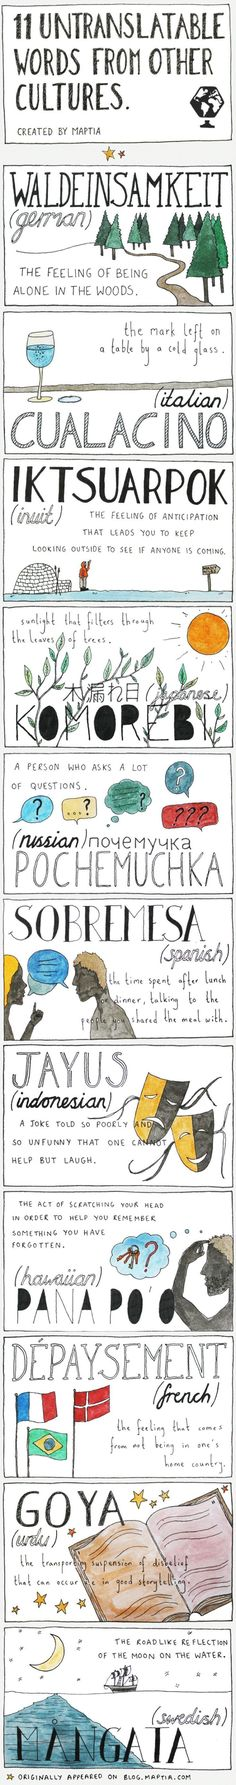 11 Untranslatable Words From Other Cultures Infographic